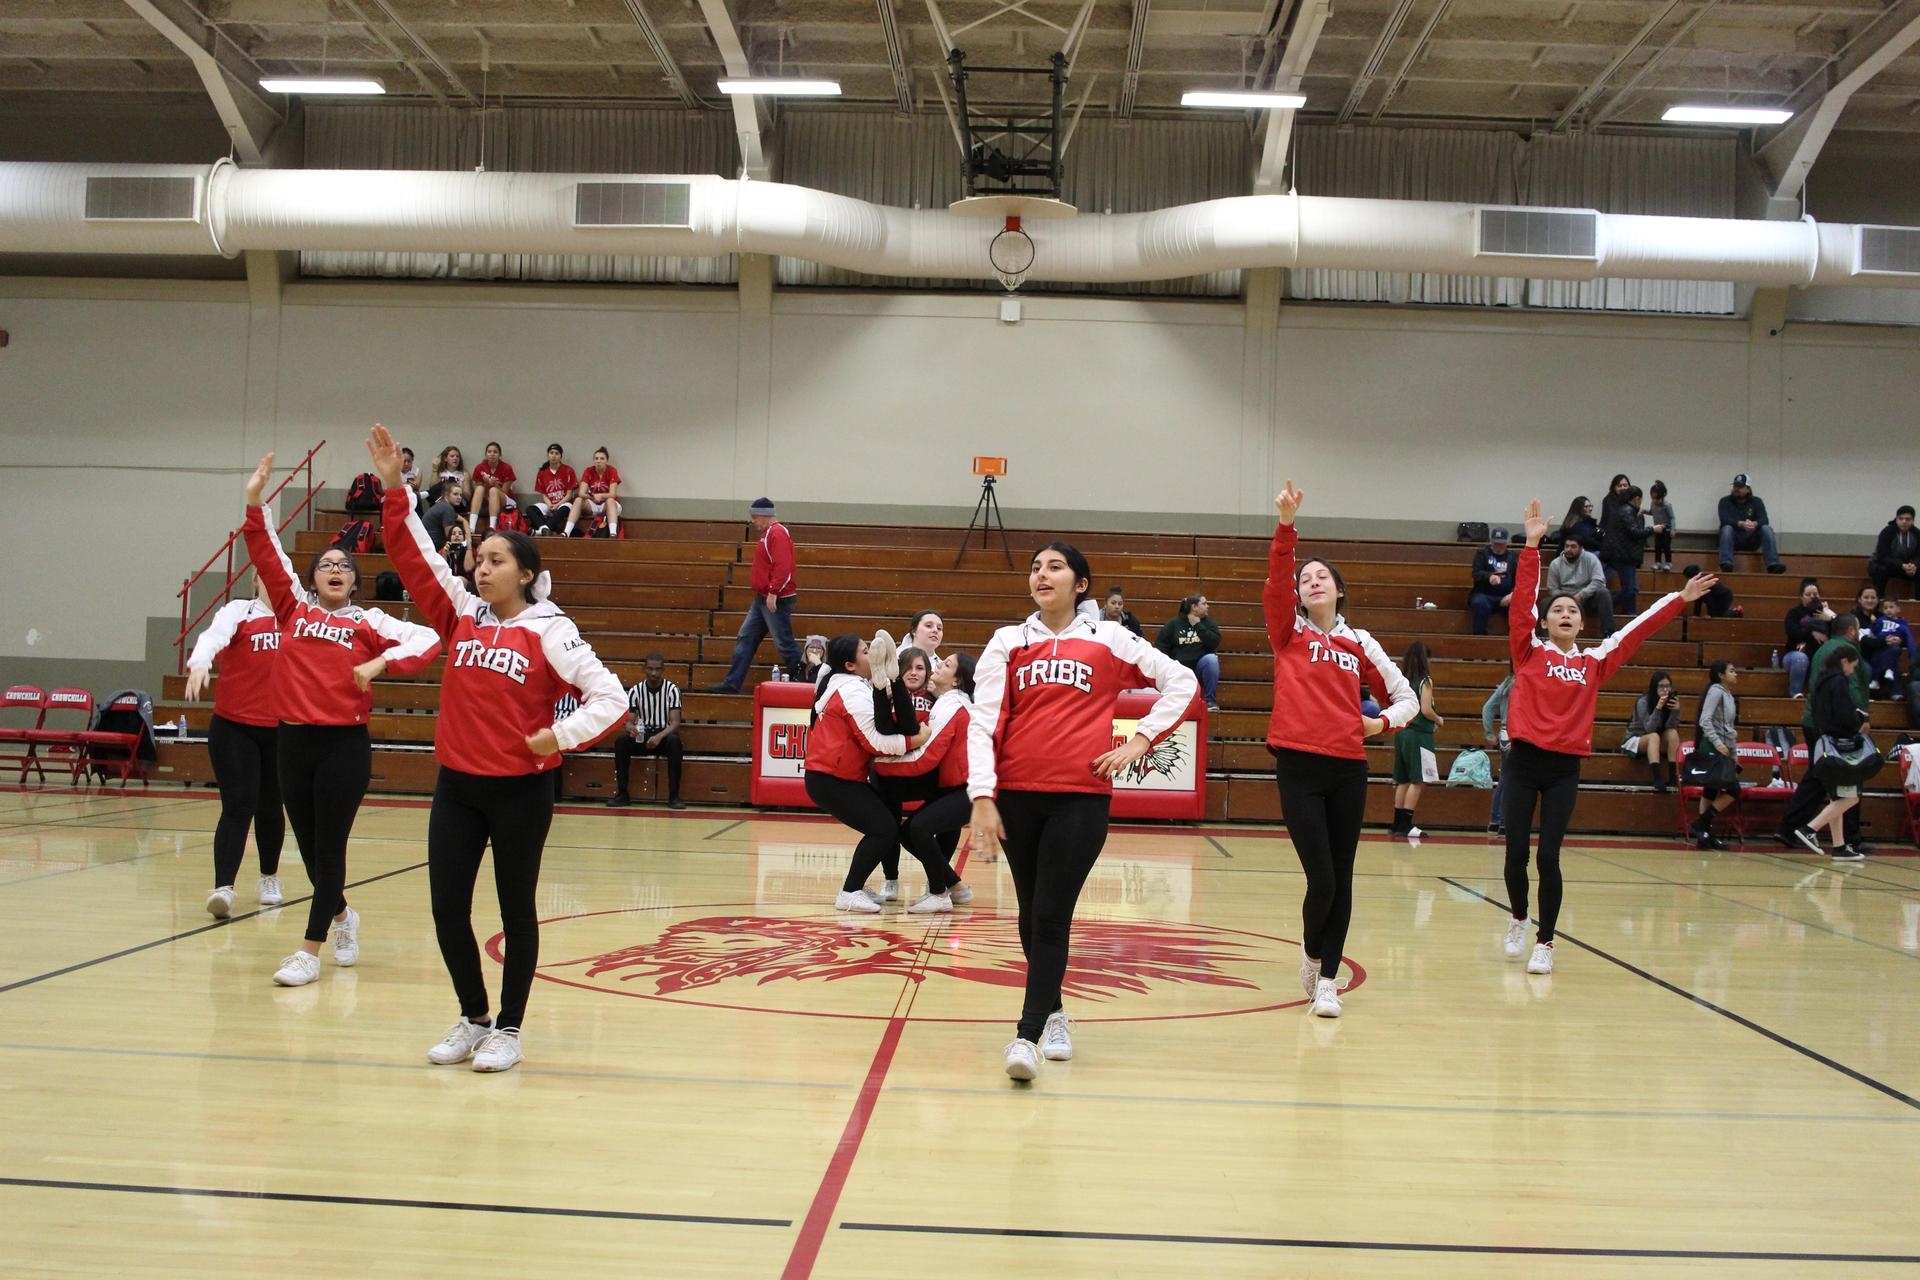 Varsity cheer at basketball against Le Grand